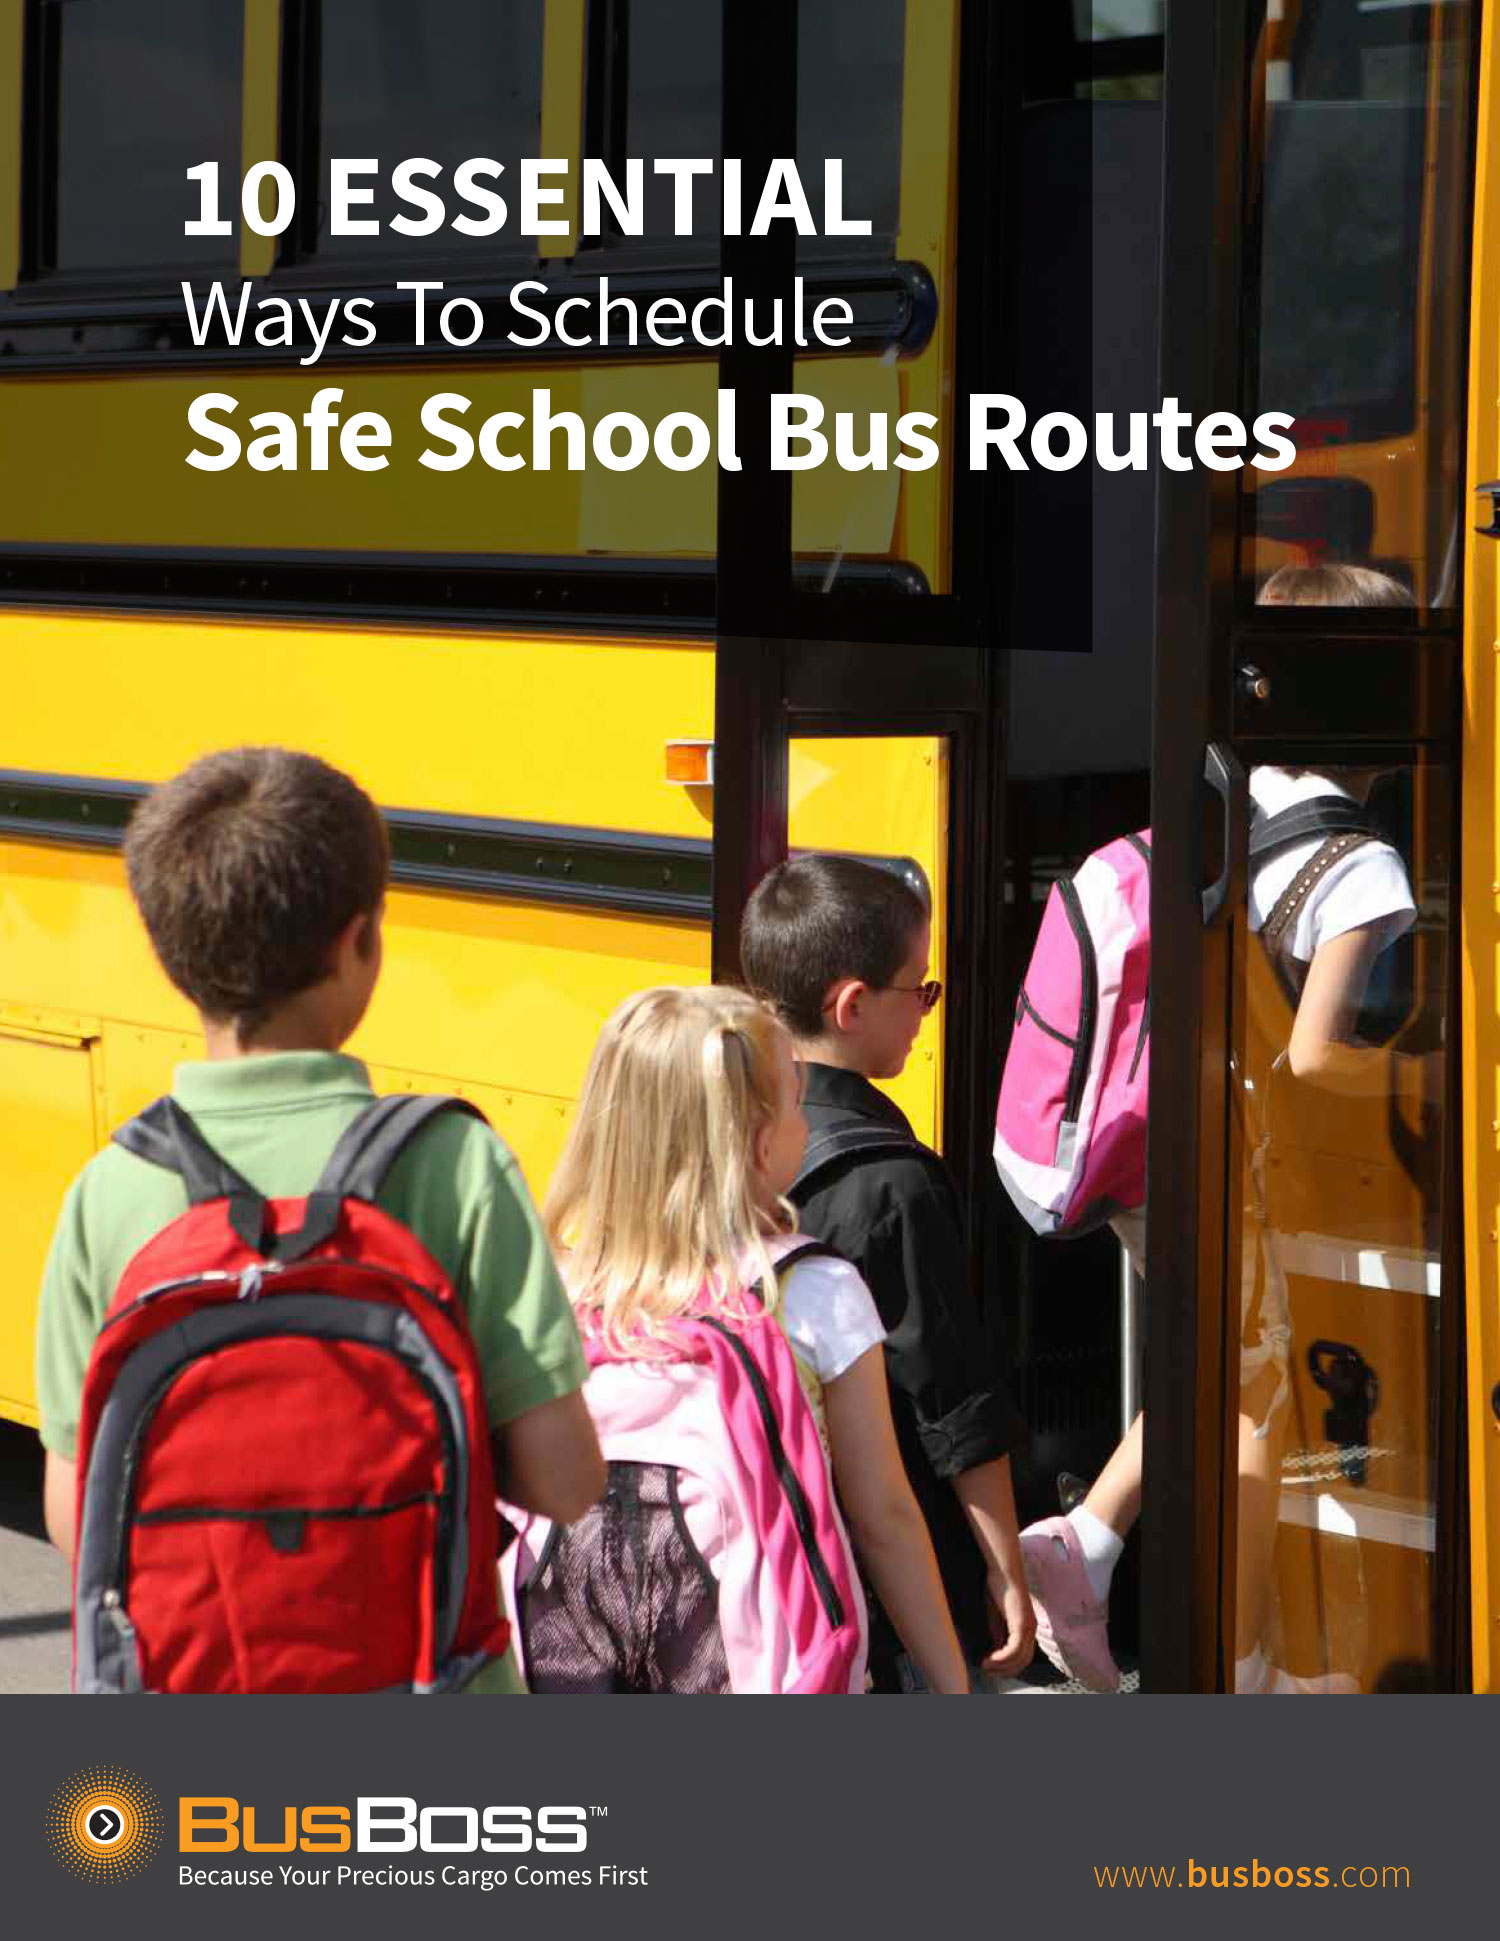 10 Essential Ways To Schedule Safe School Bus Routes